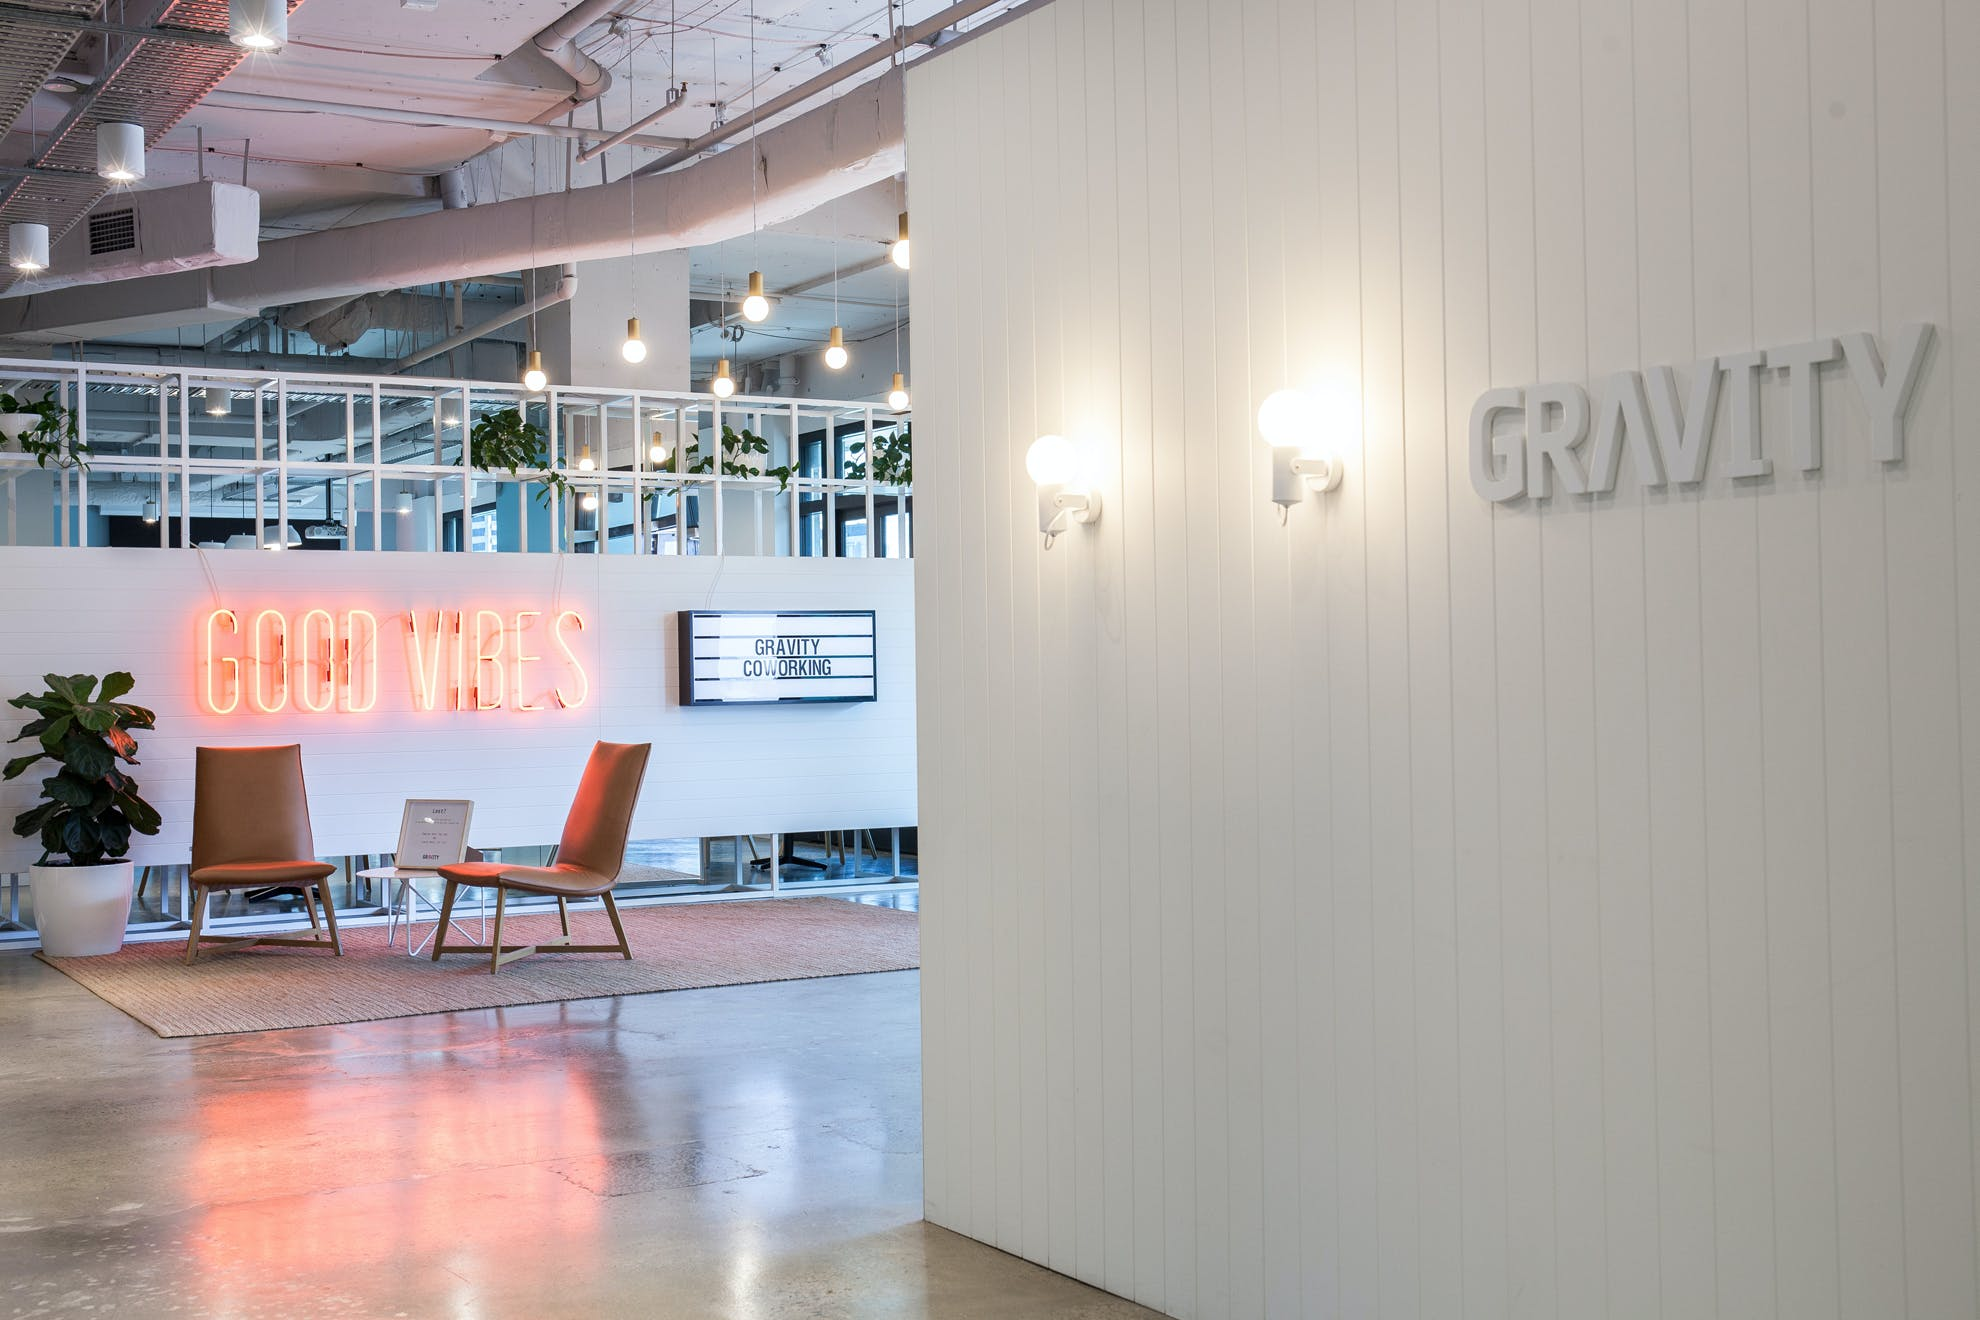 Coworking at Gravity Coworking Sydney, image 1